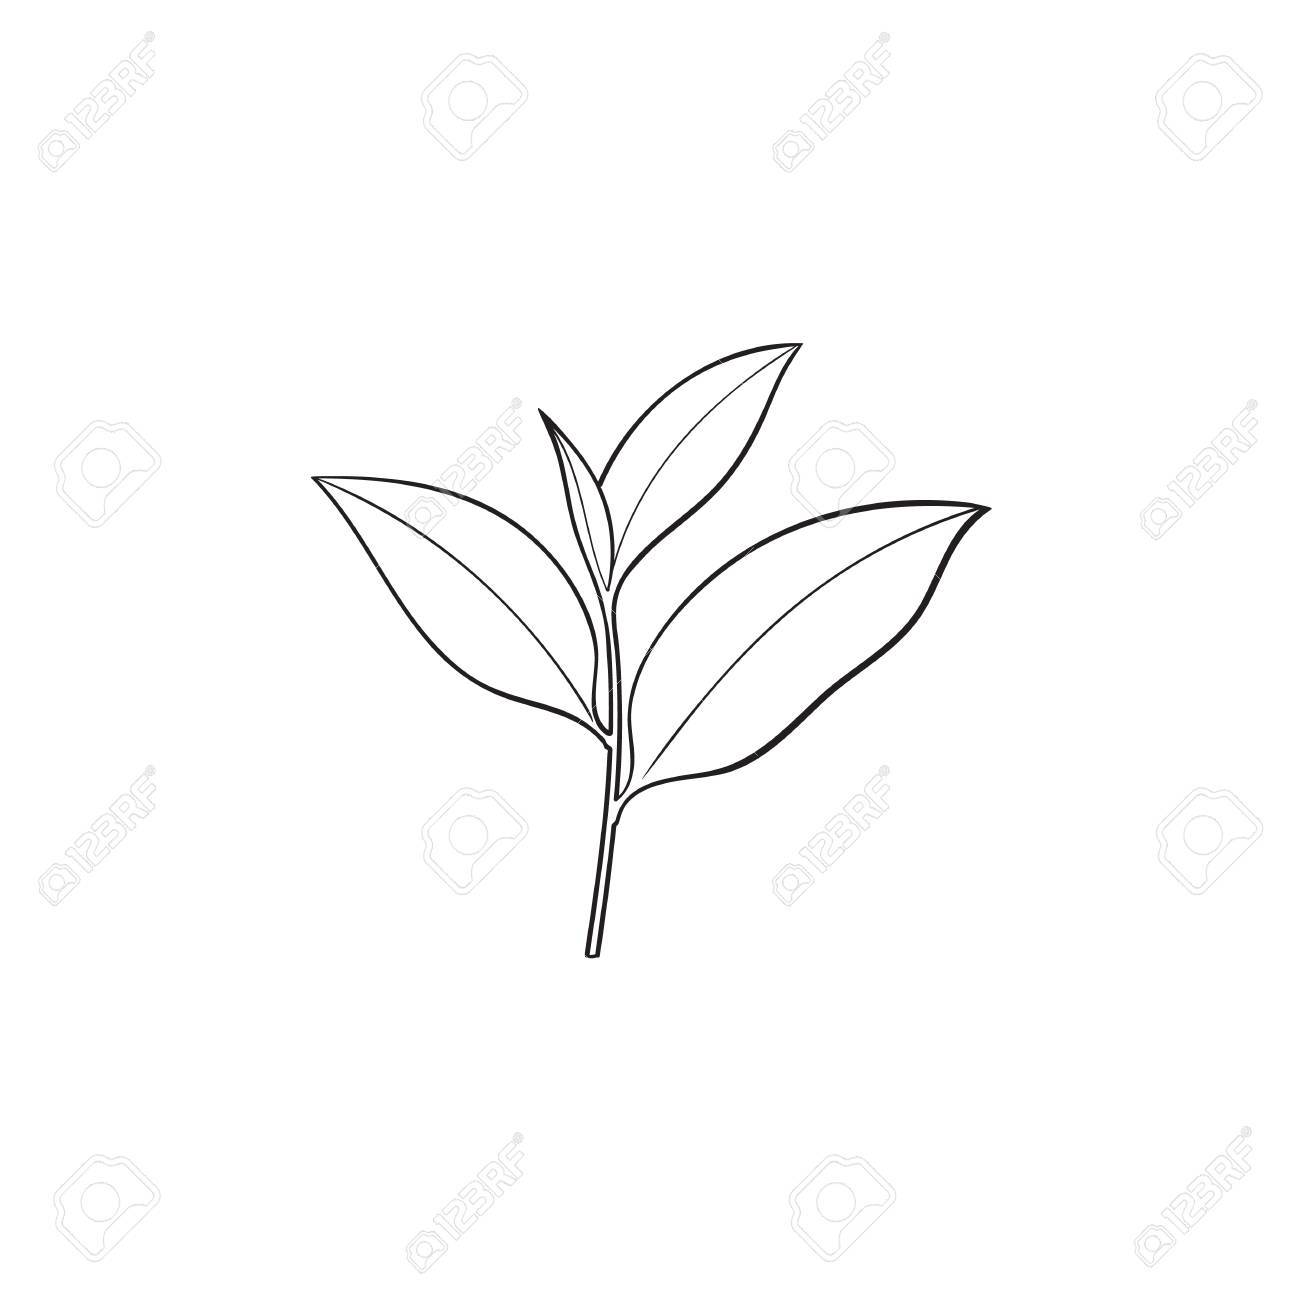 Tea leaves drawing at getdrawings free for personal use tea 1300x1300 vector sketch cartoon style green tea leaves branch isolated thecheapjerseys Image collections